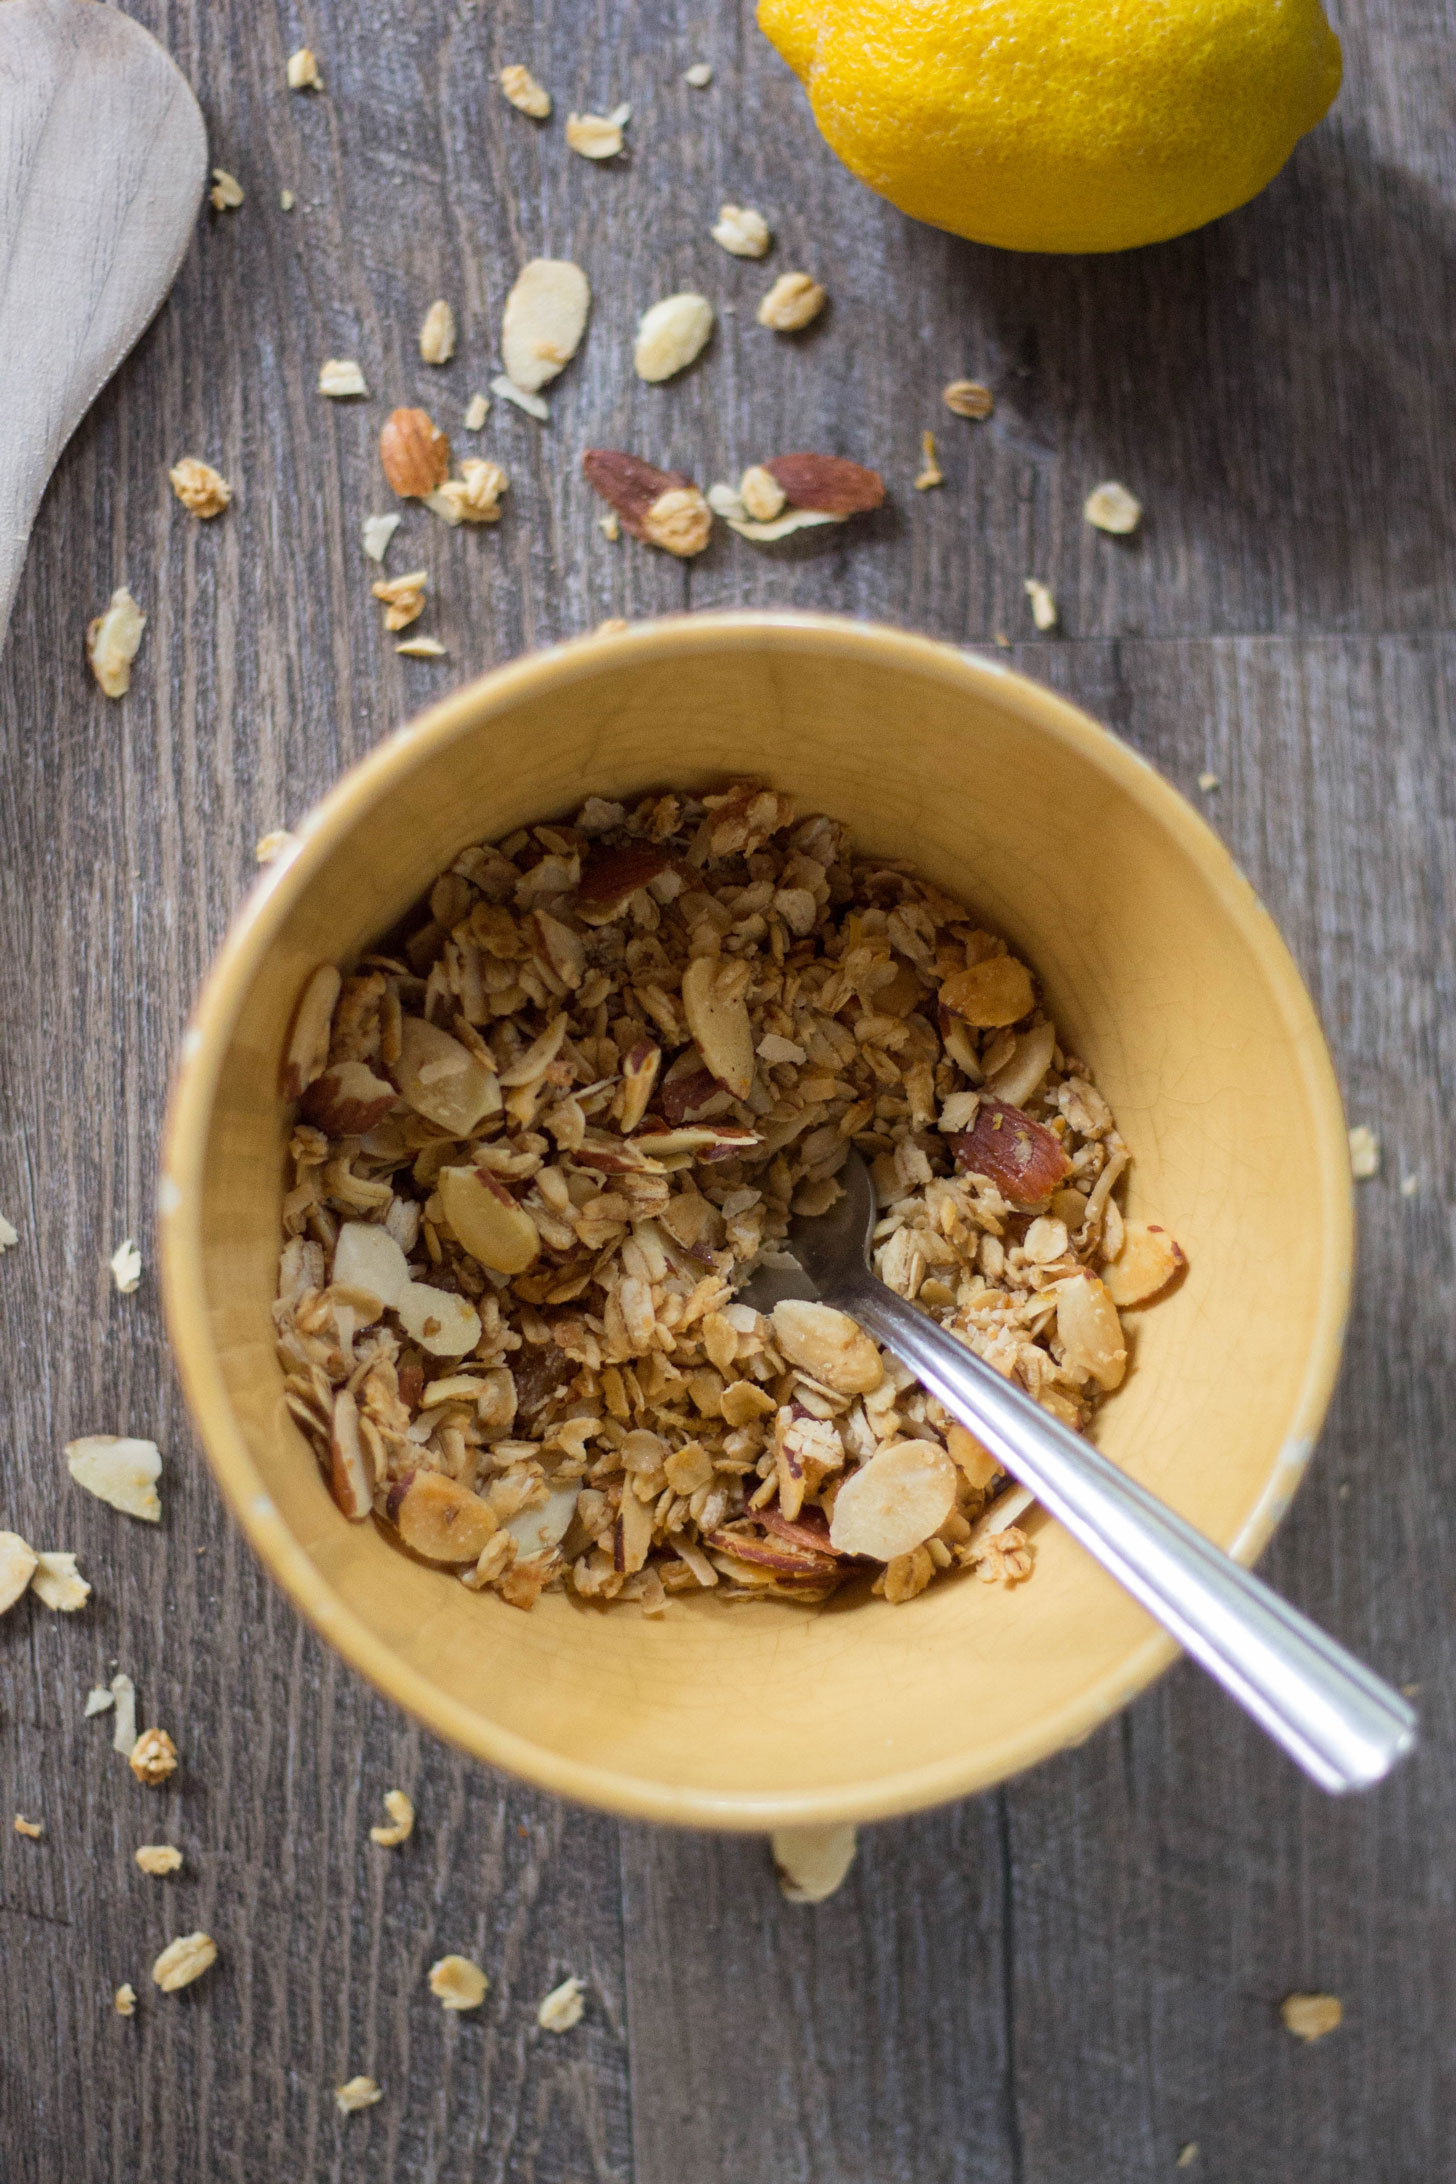 Vegan granola in yellow bowl with lemon in background.